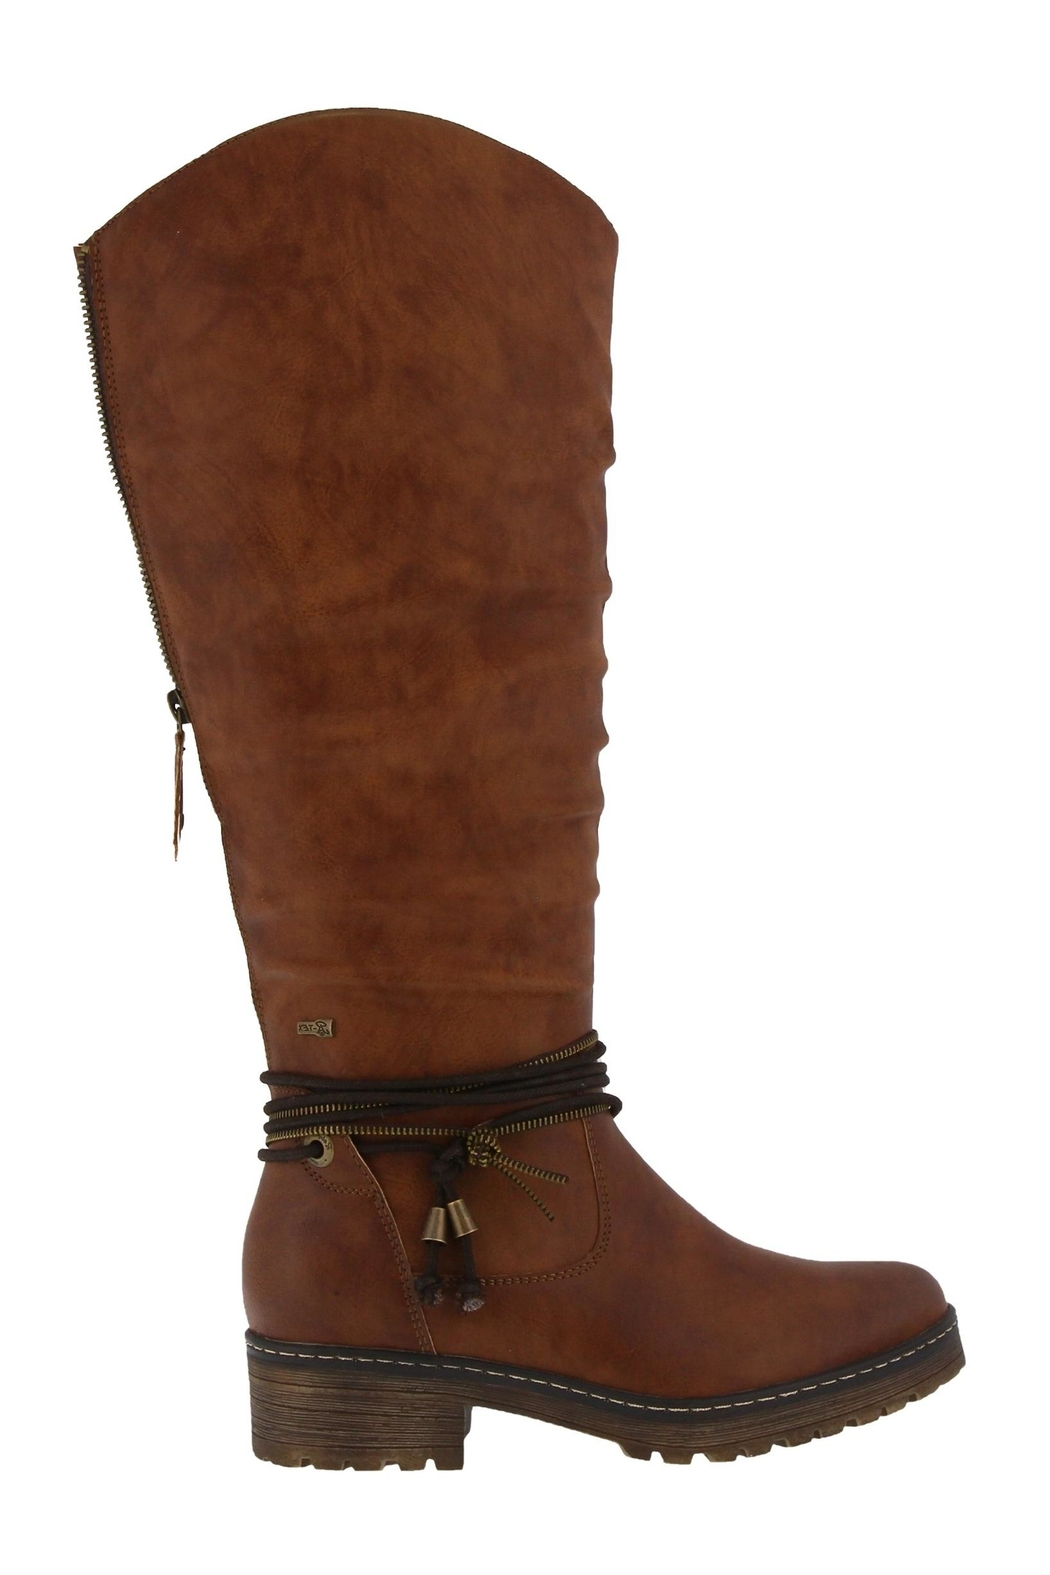 Spring Footwear Double Zipper Boot - Side Cropped Image